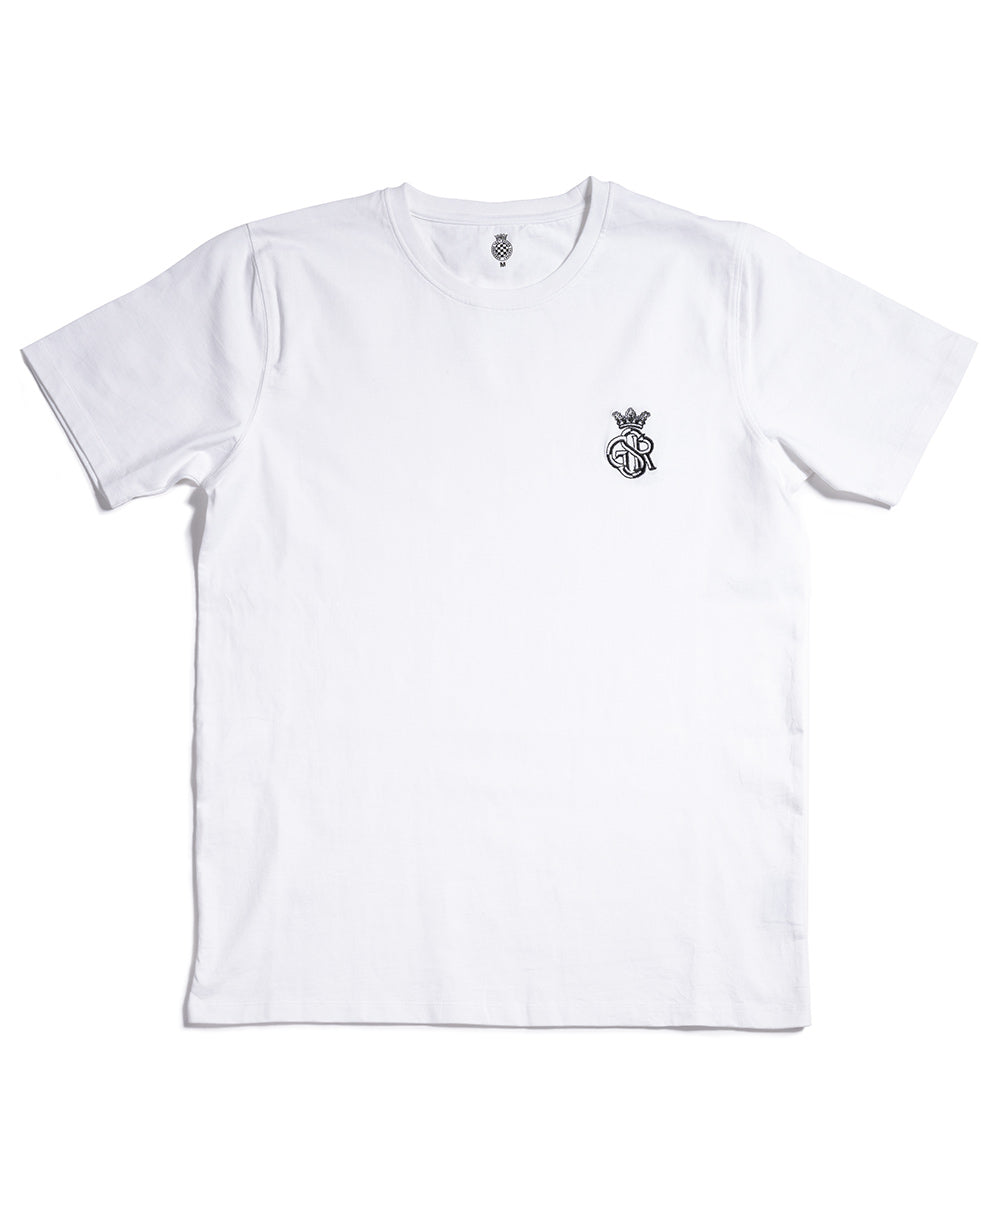 GSR Men's White T-Shirt